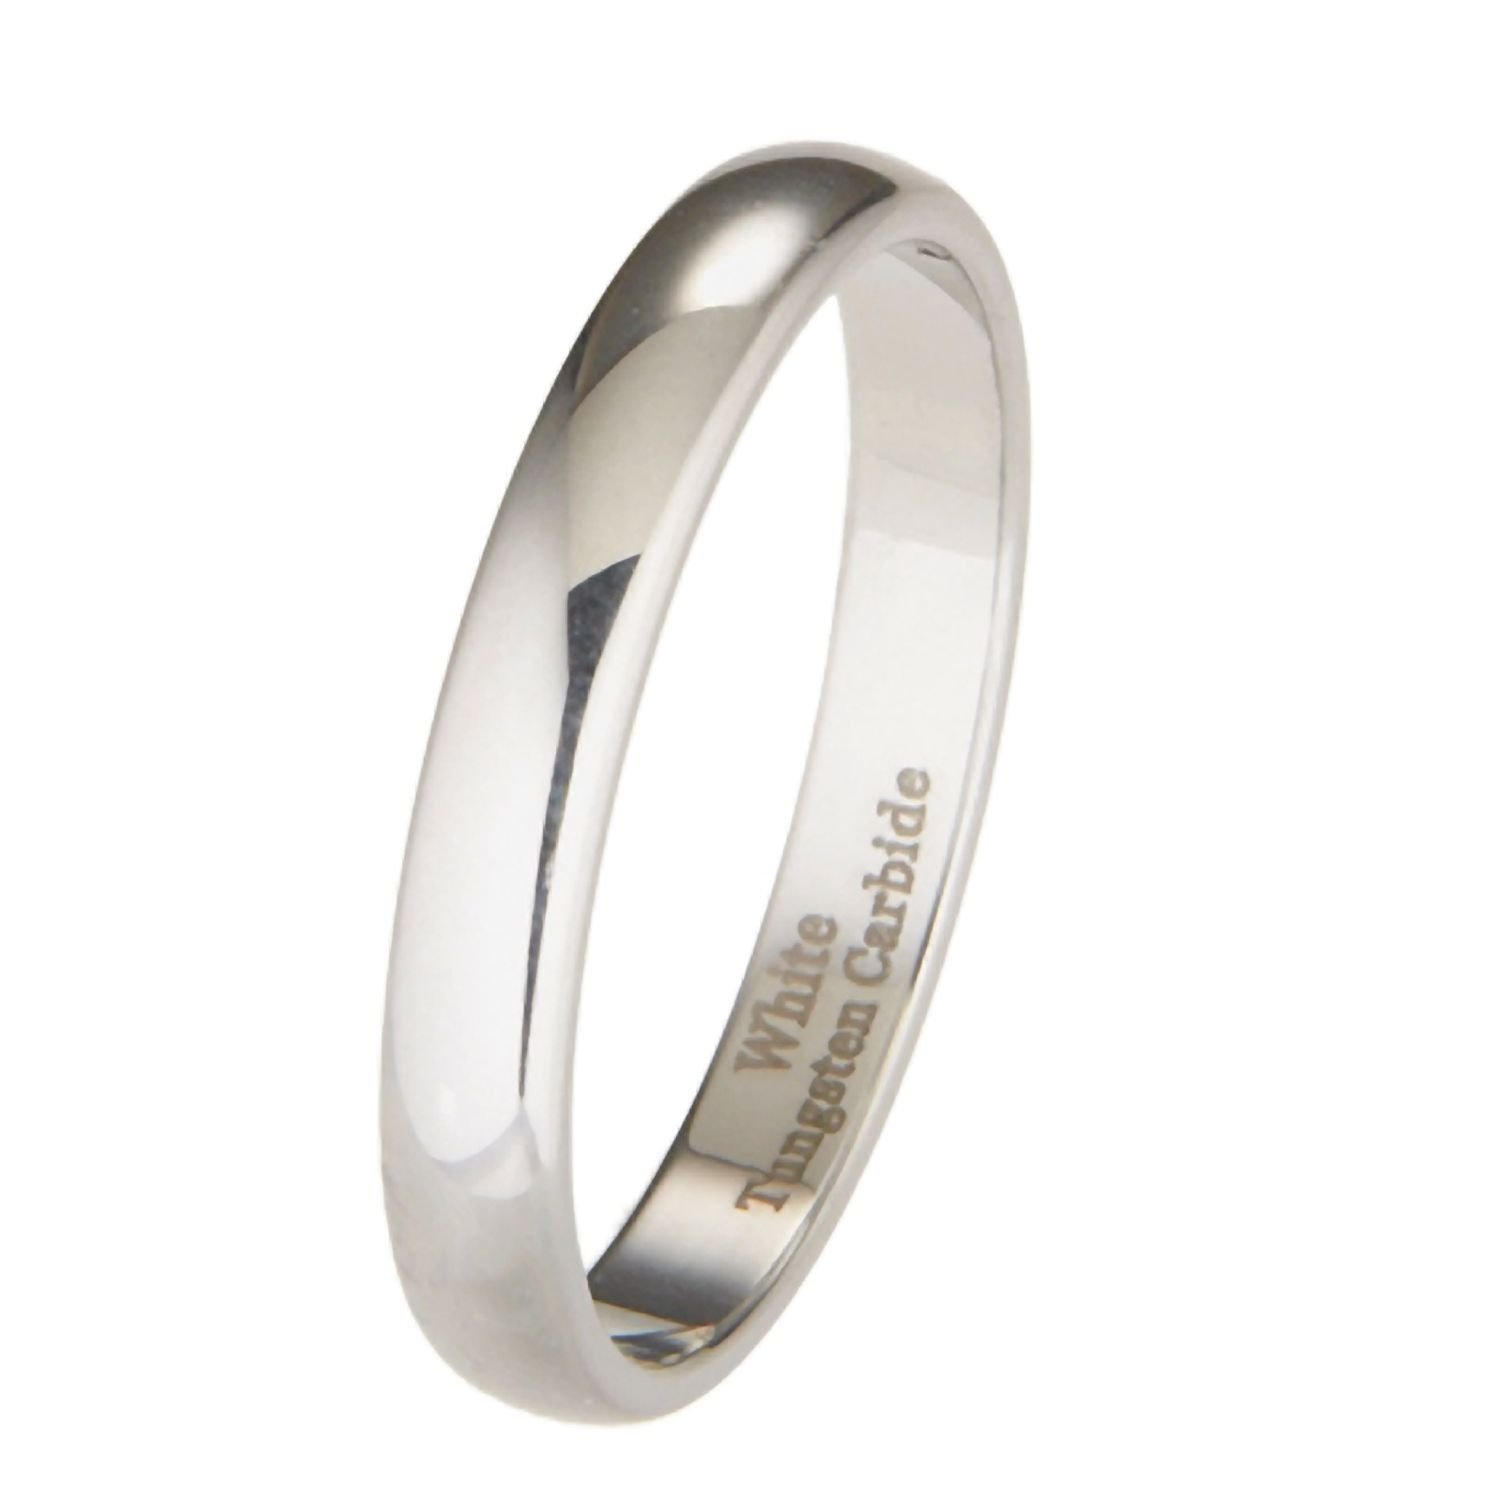 MJ Metals Jewelry Custom Engraved 3mm White Tungsten Carbide Polished Classic Wedding Ring Sz 8.5